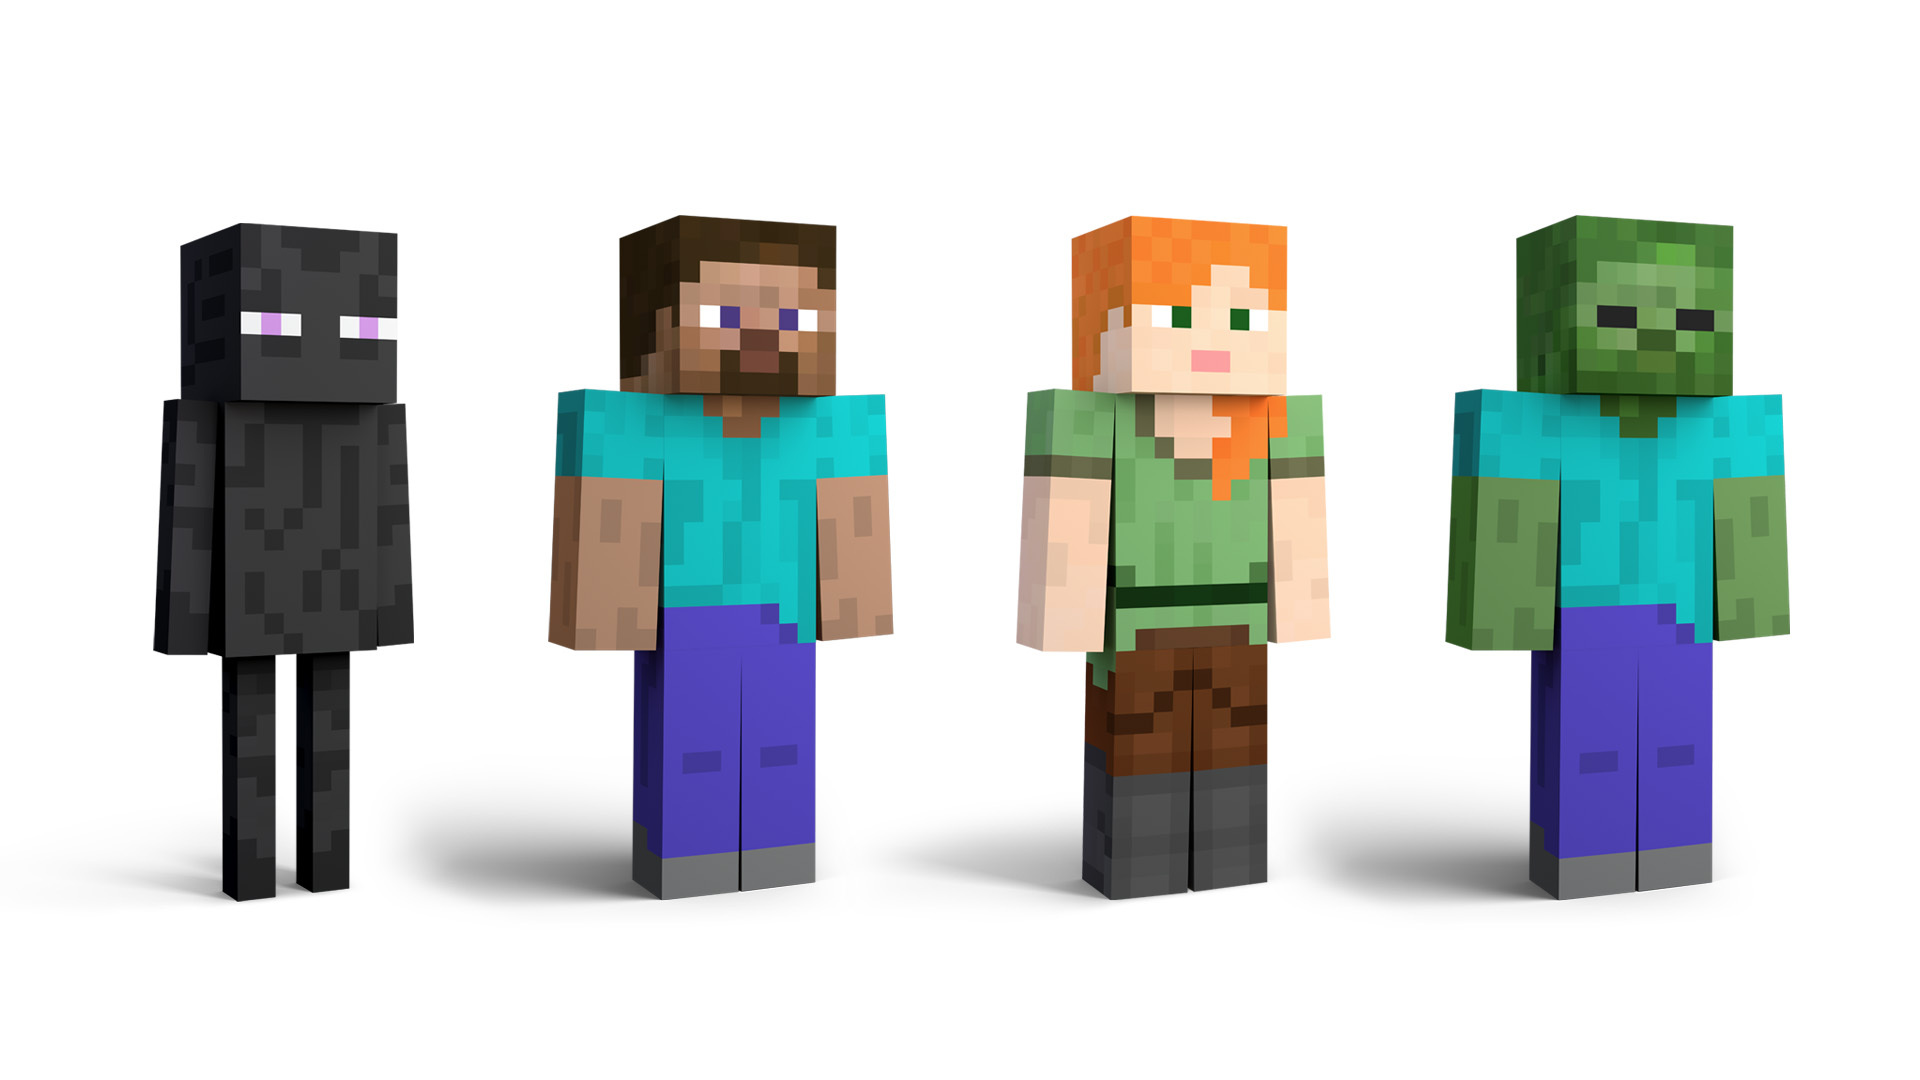 Minecraft Steve and Alex join Super Smash Bros Ultimate on 13th October  (US) 14th October (Europe) – My Nintendo News